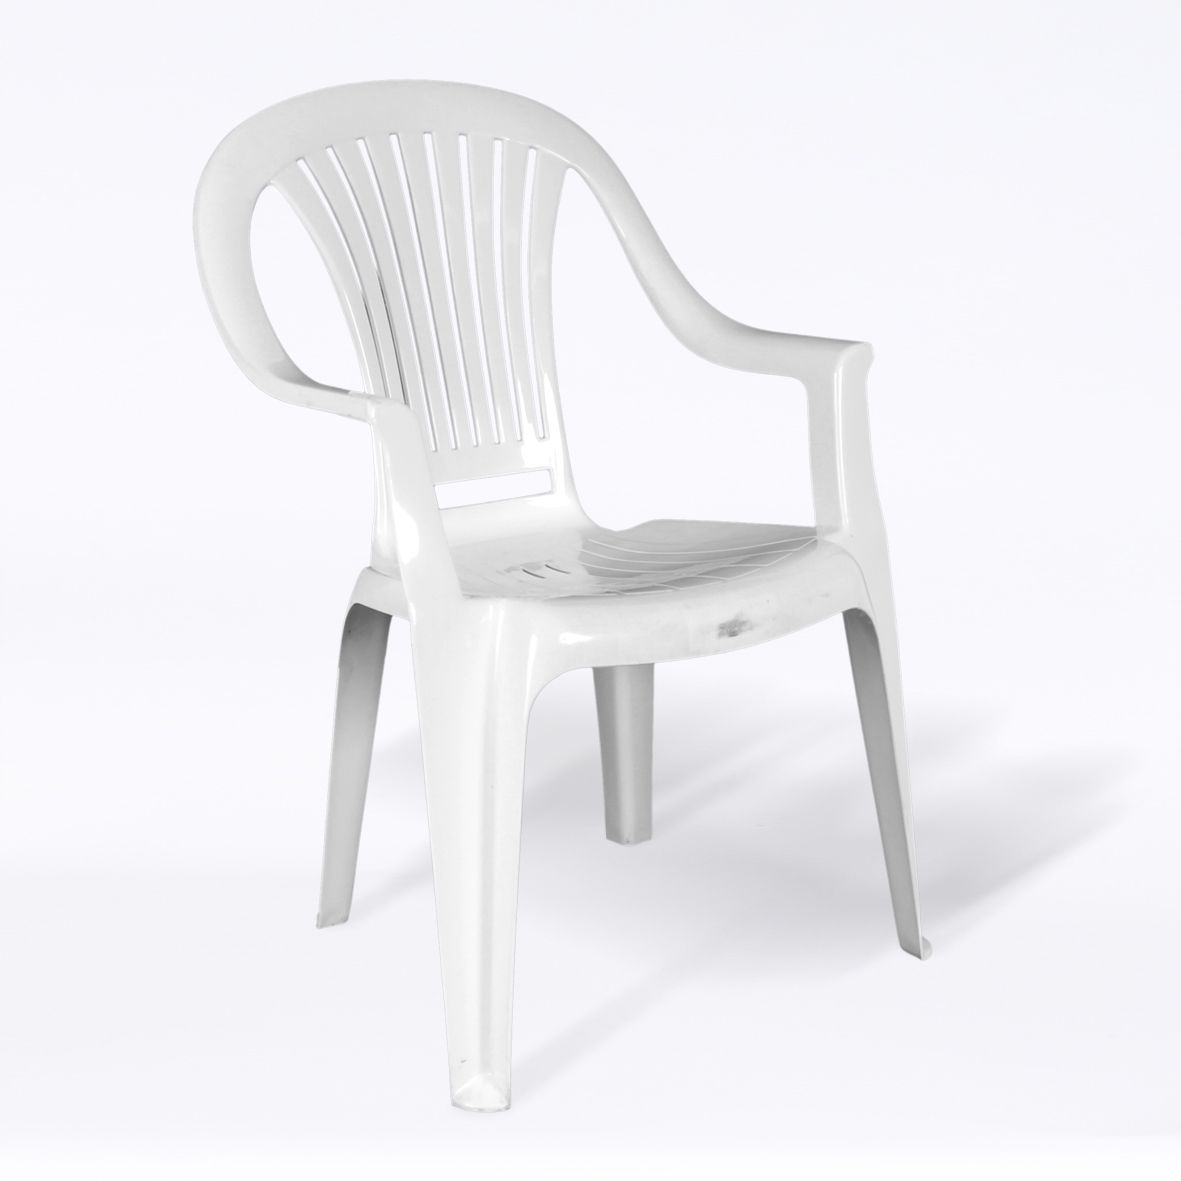 White Outdoor Chairs Visit More At Http Adazed Com White Outdoor